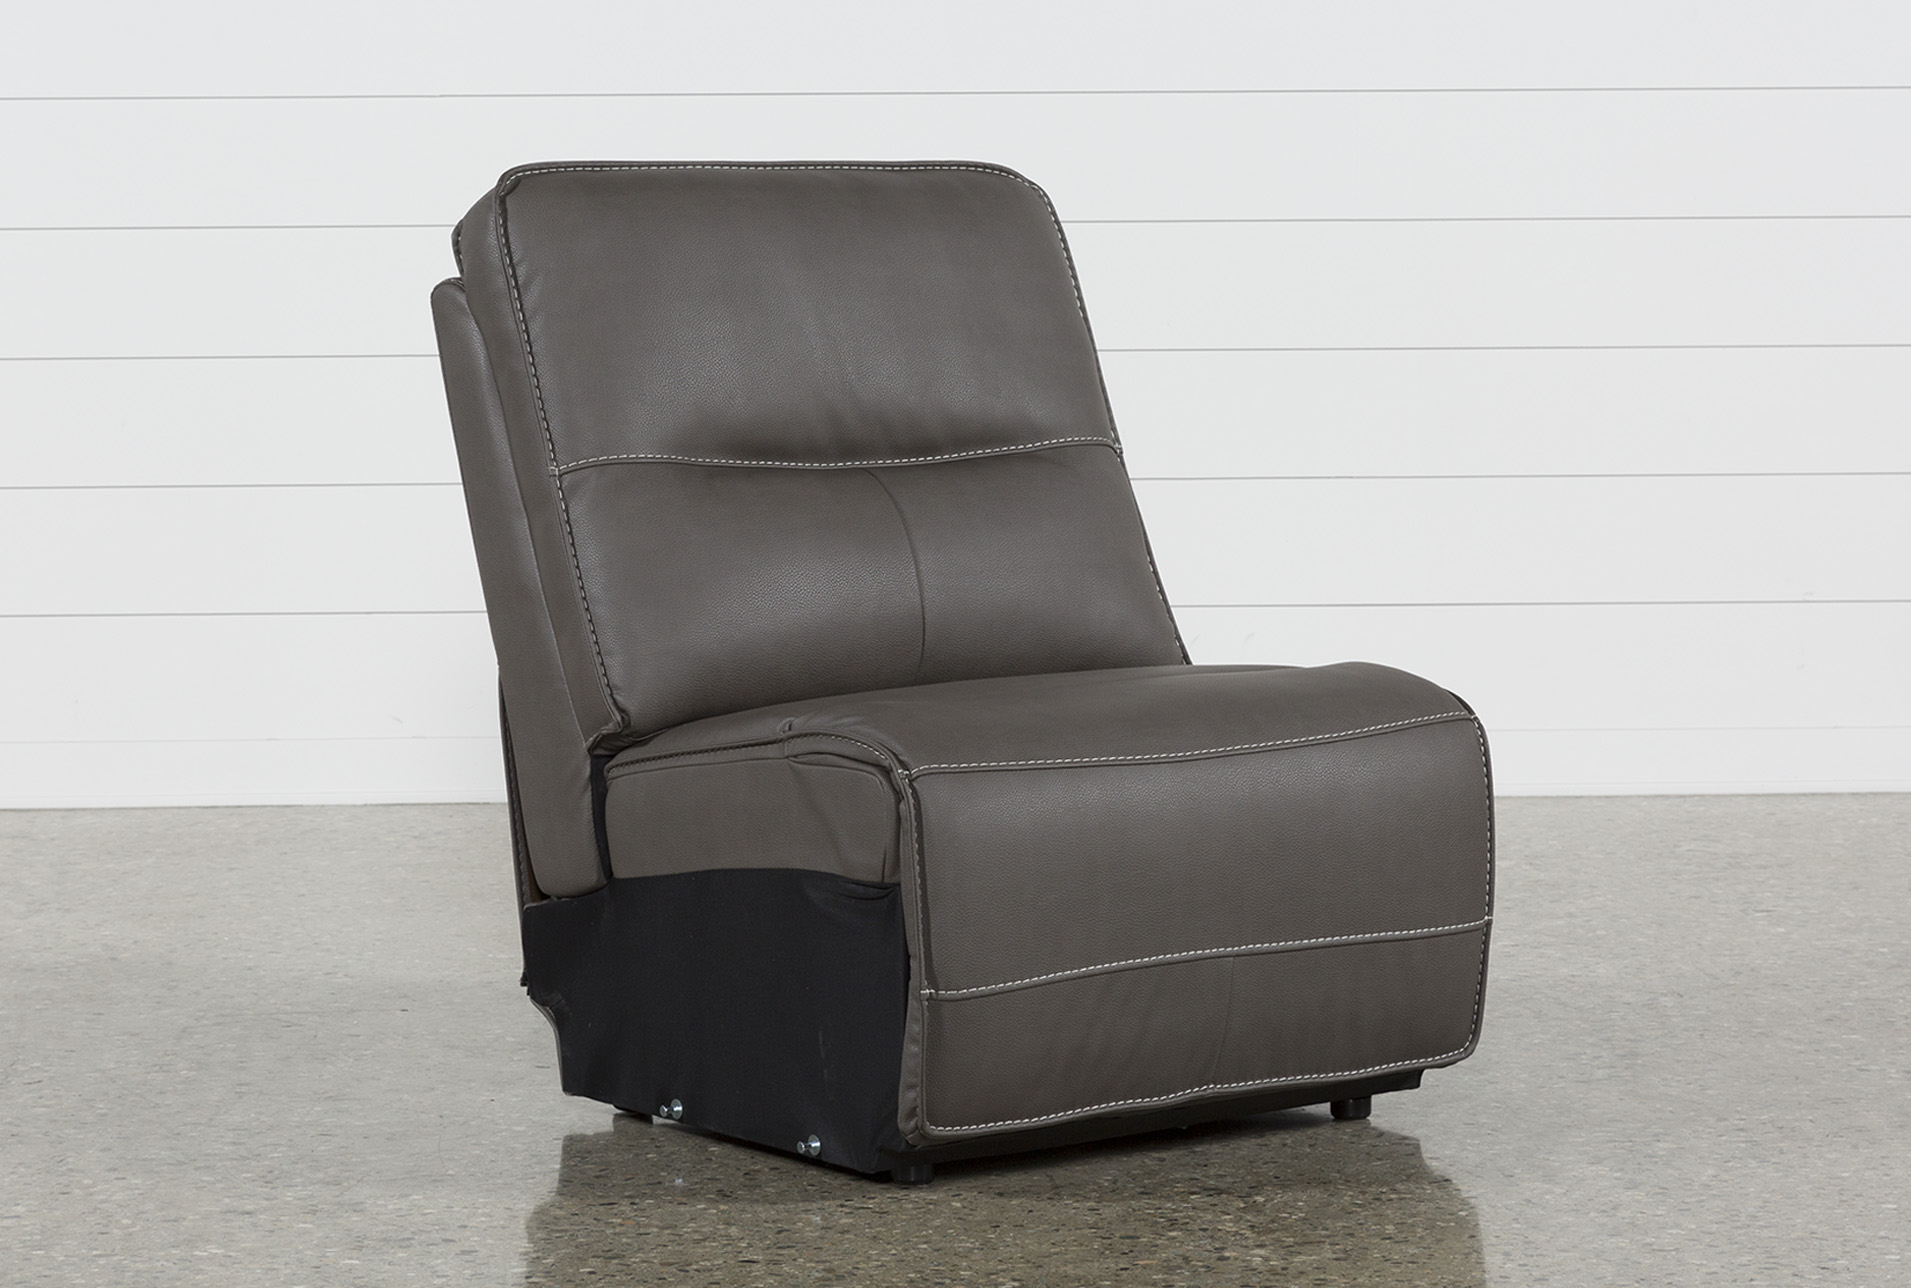 Attirant Marcus Grey Armless Chair (Qty: 1) Has Been Successfully Added To Your Cart.